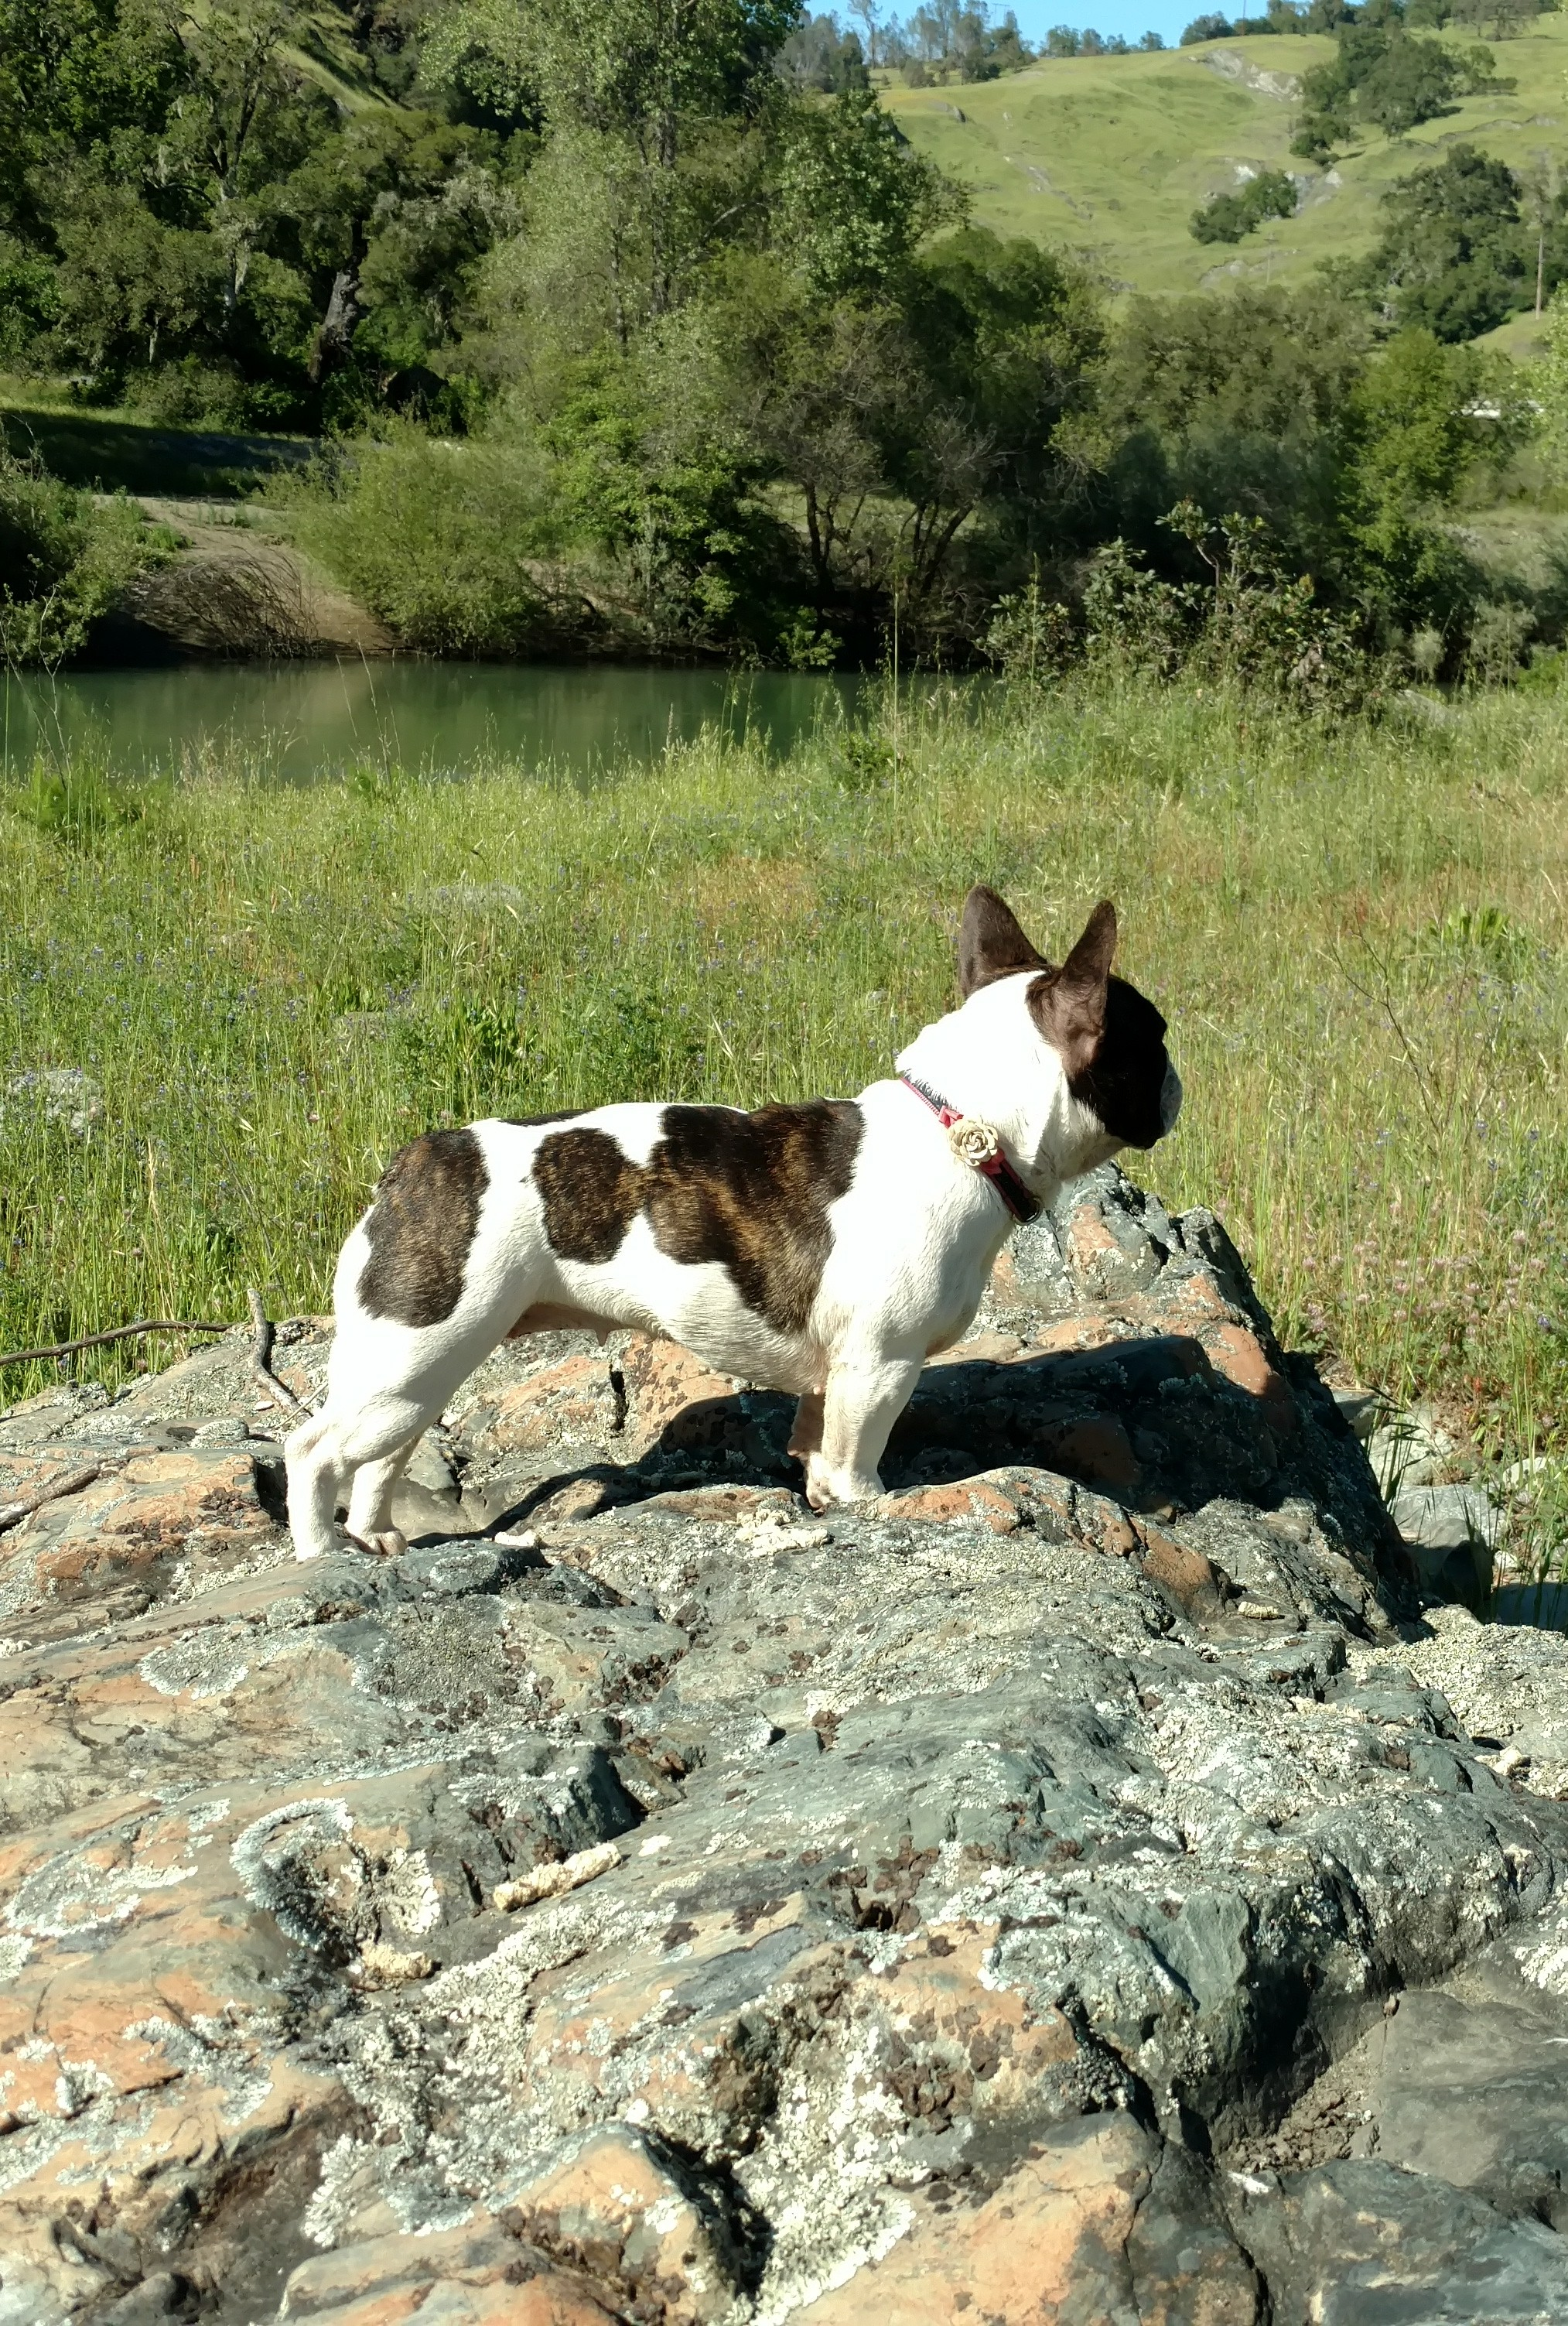 Olive looking good with her family at the Russian River, CA.